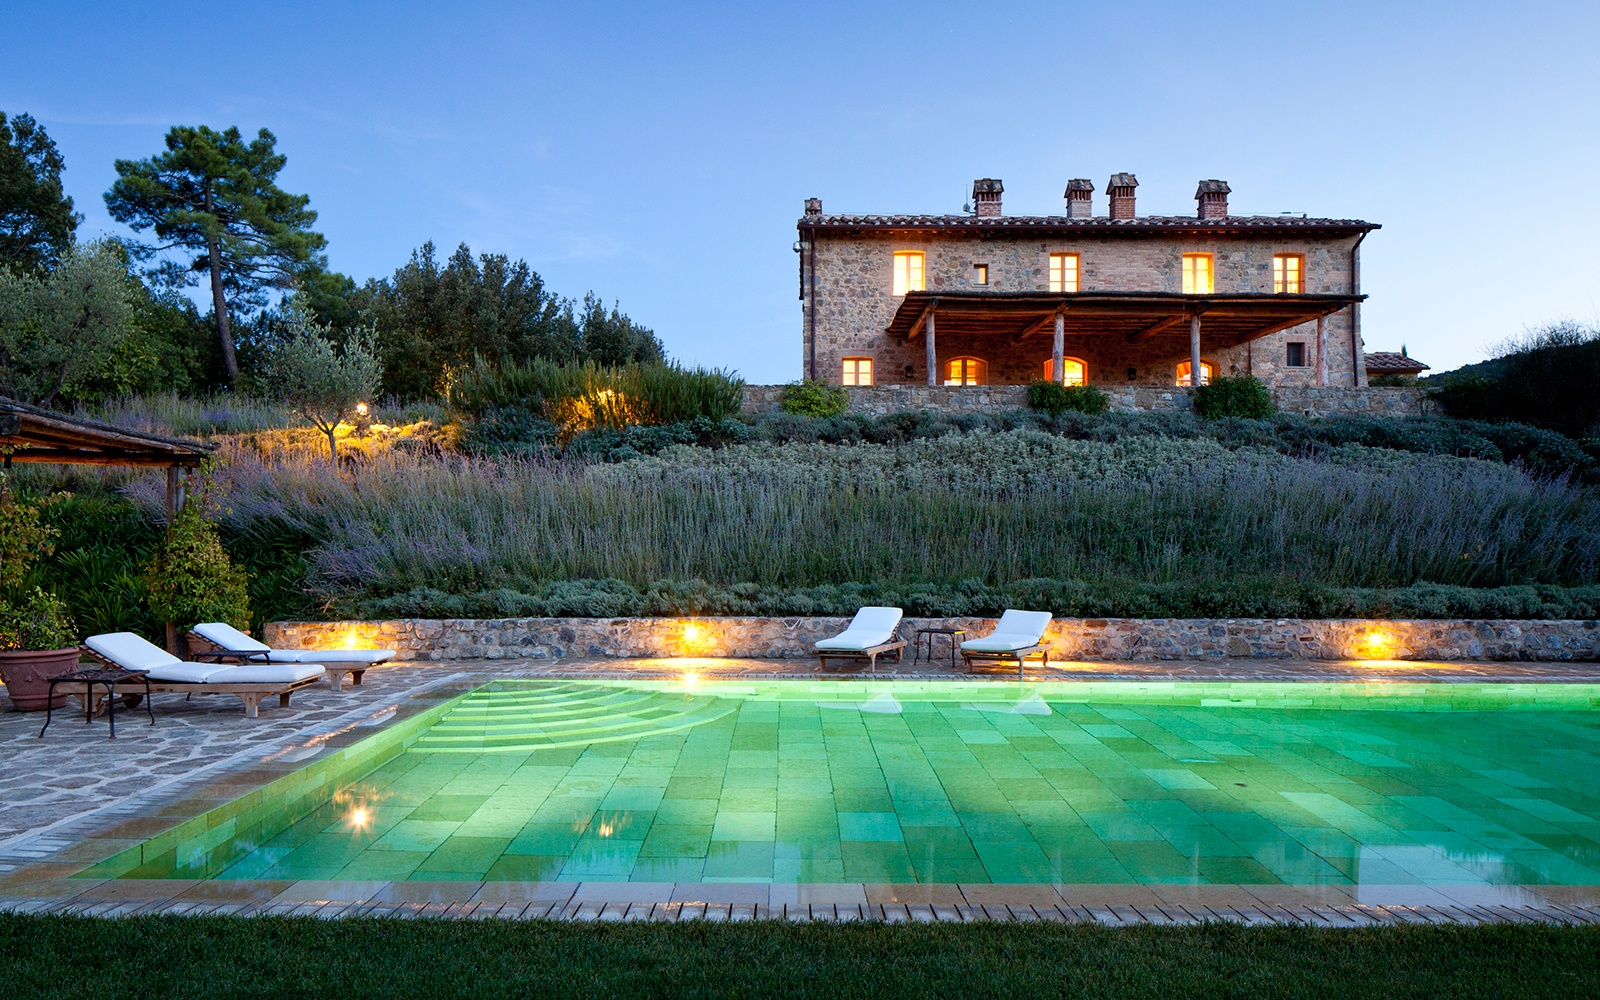 Rosewood Hotels Reopens Centuries-Old Tuscan Wine Estate